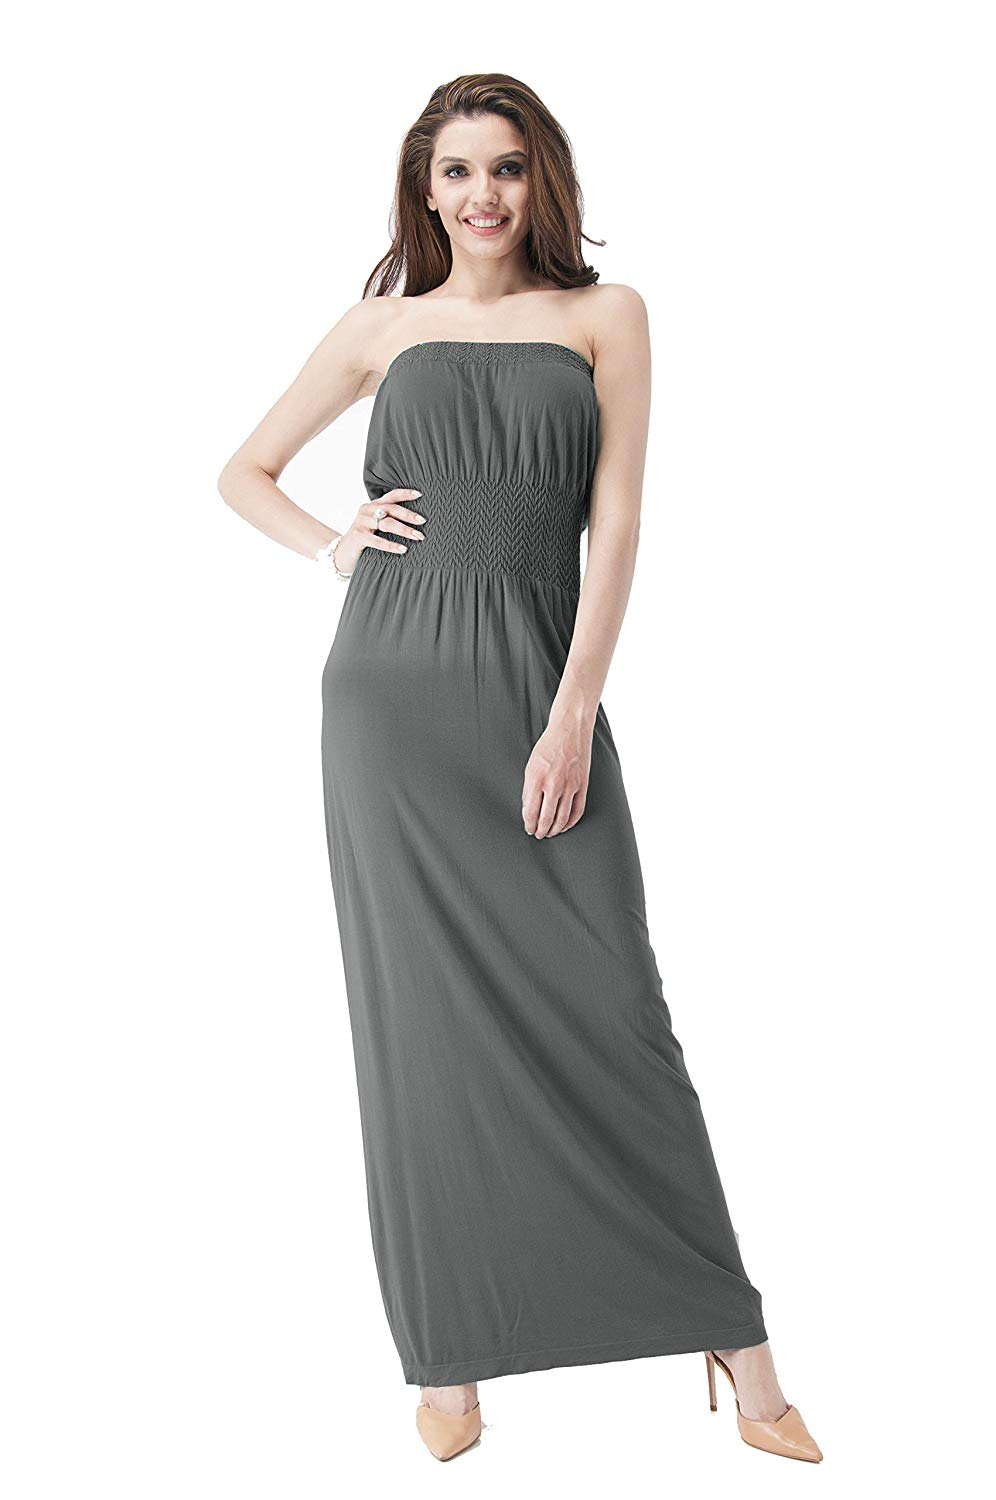 c4384d9542 Get Quotations · Hollywood Star Fashion Sleeveless Tube Top Smocked Seamless  Maxi Dress